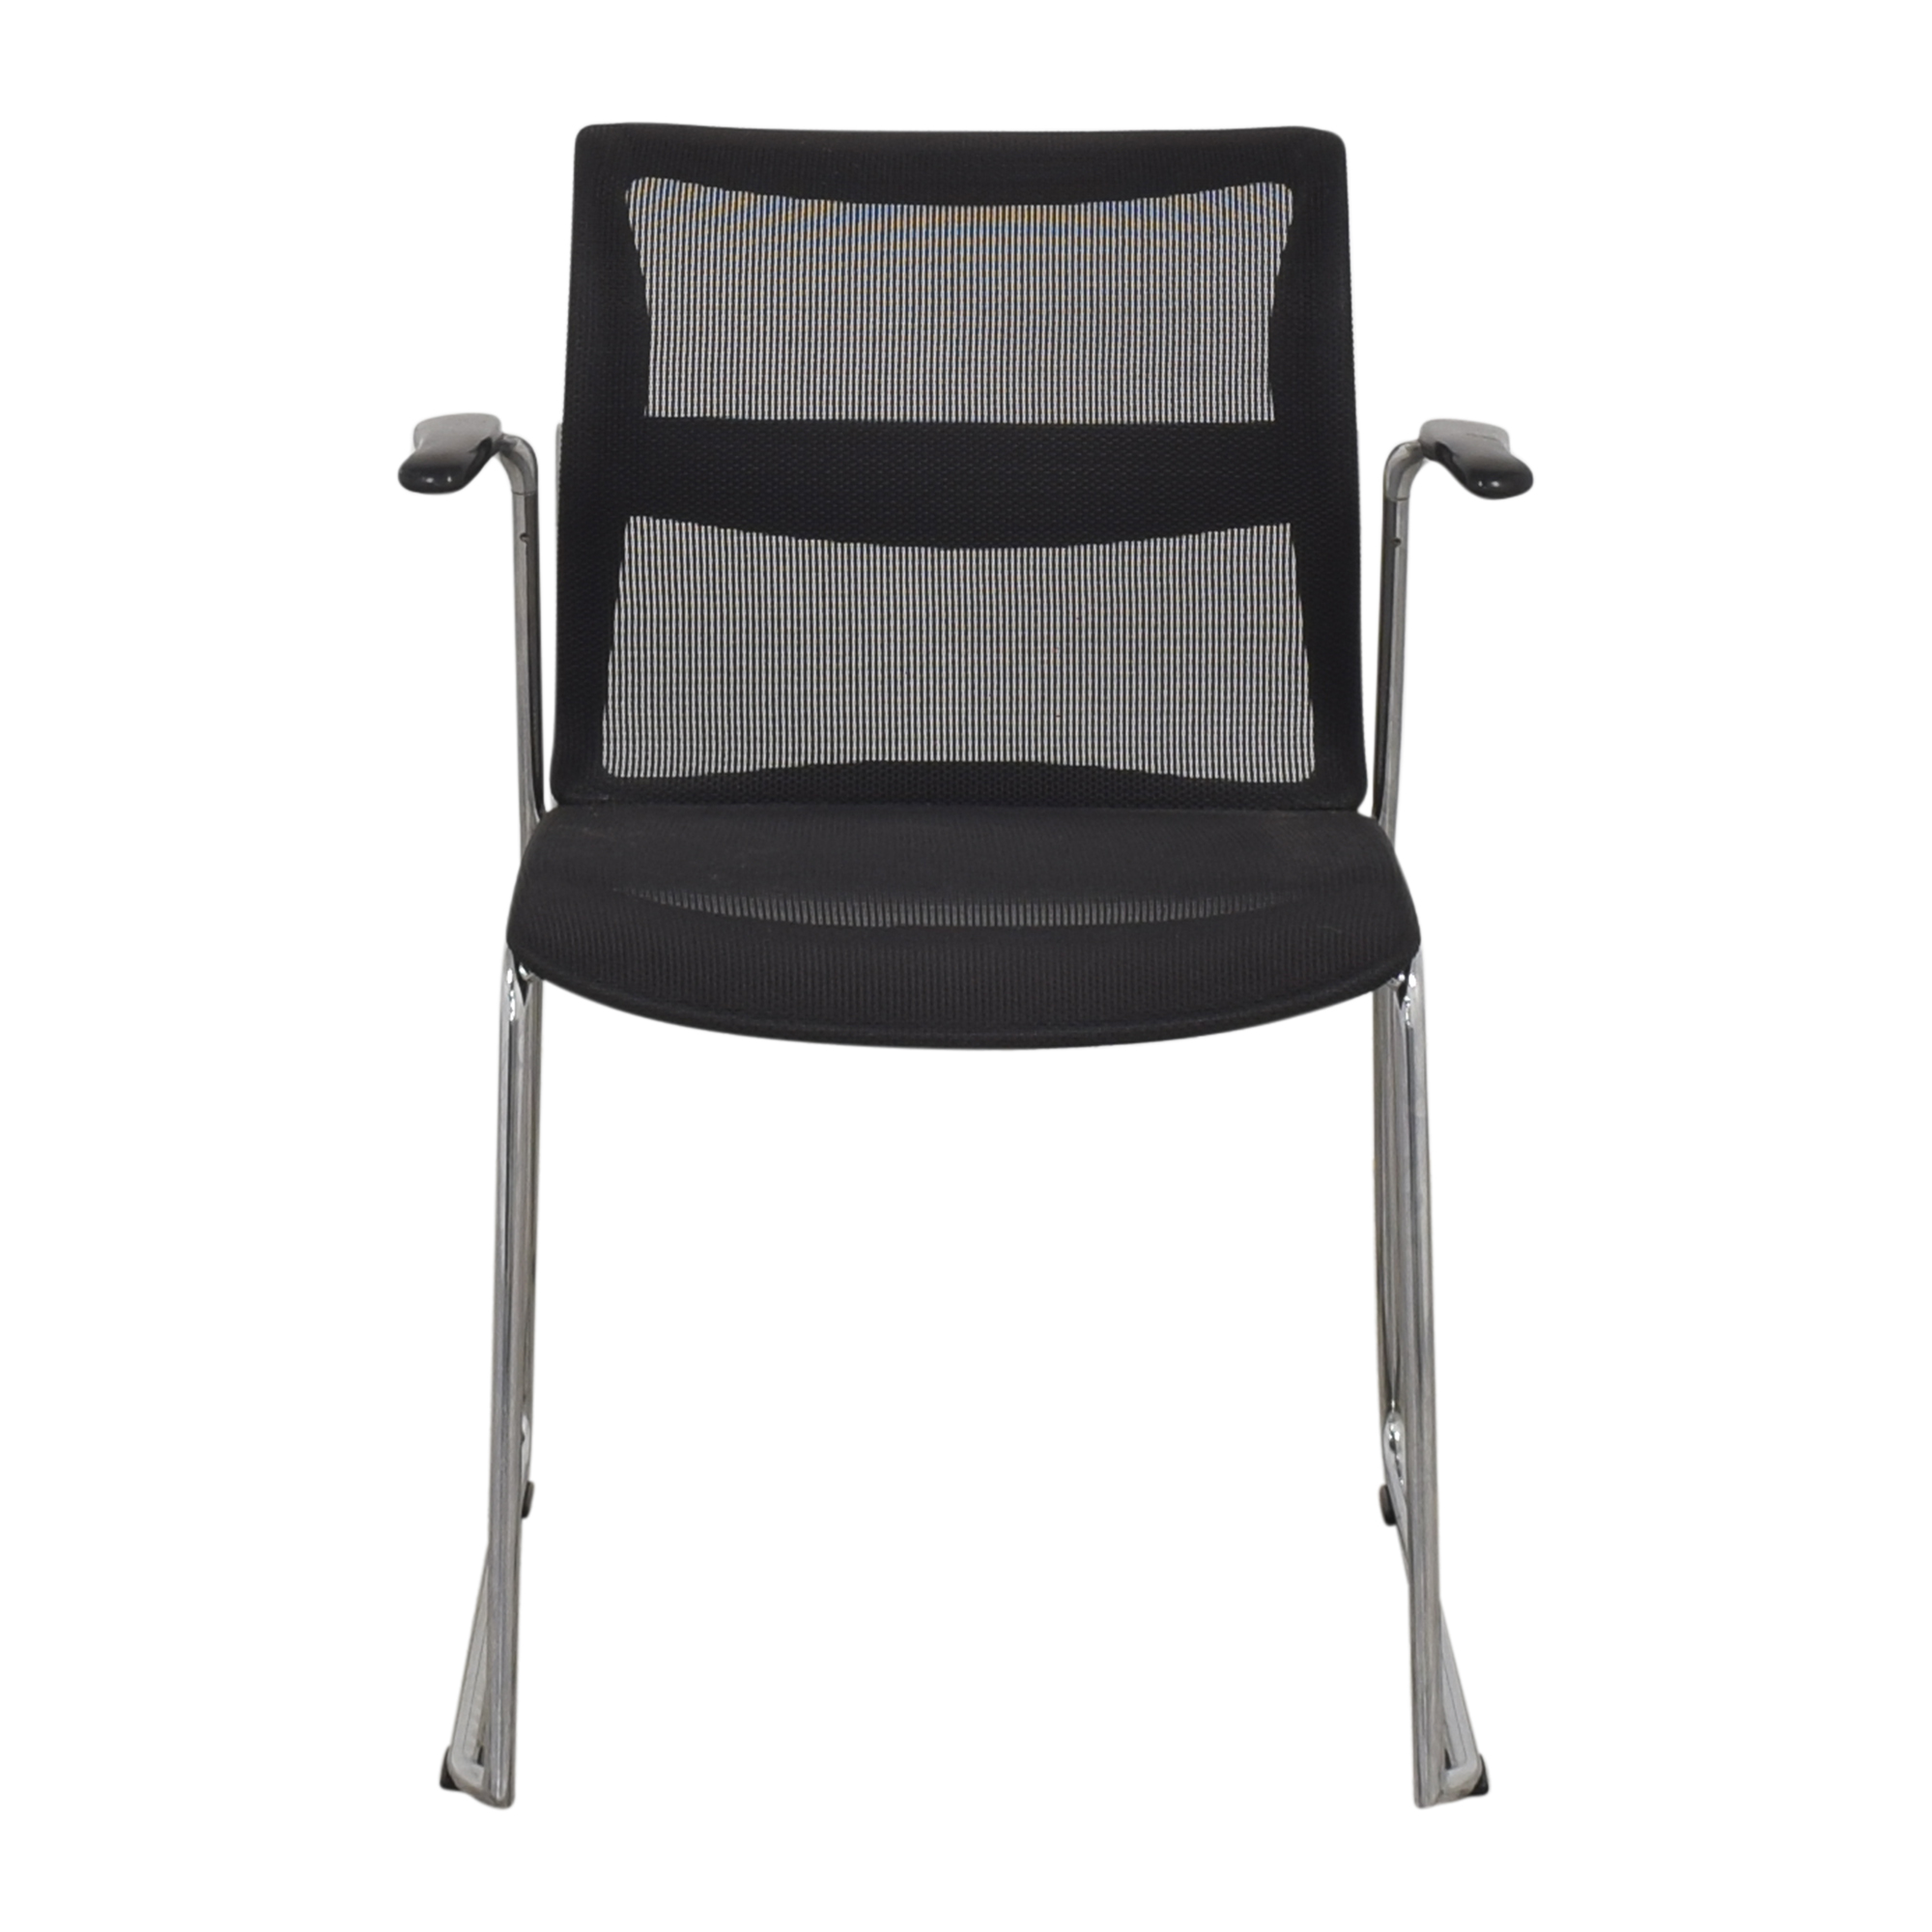 Stylex Stylex Zephyr Stacking Arm Chair on sale